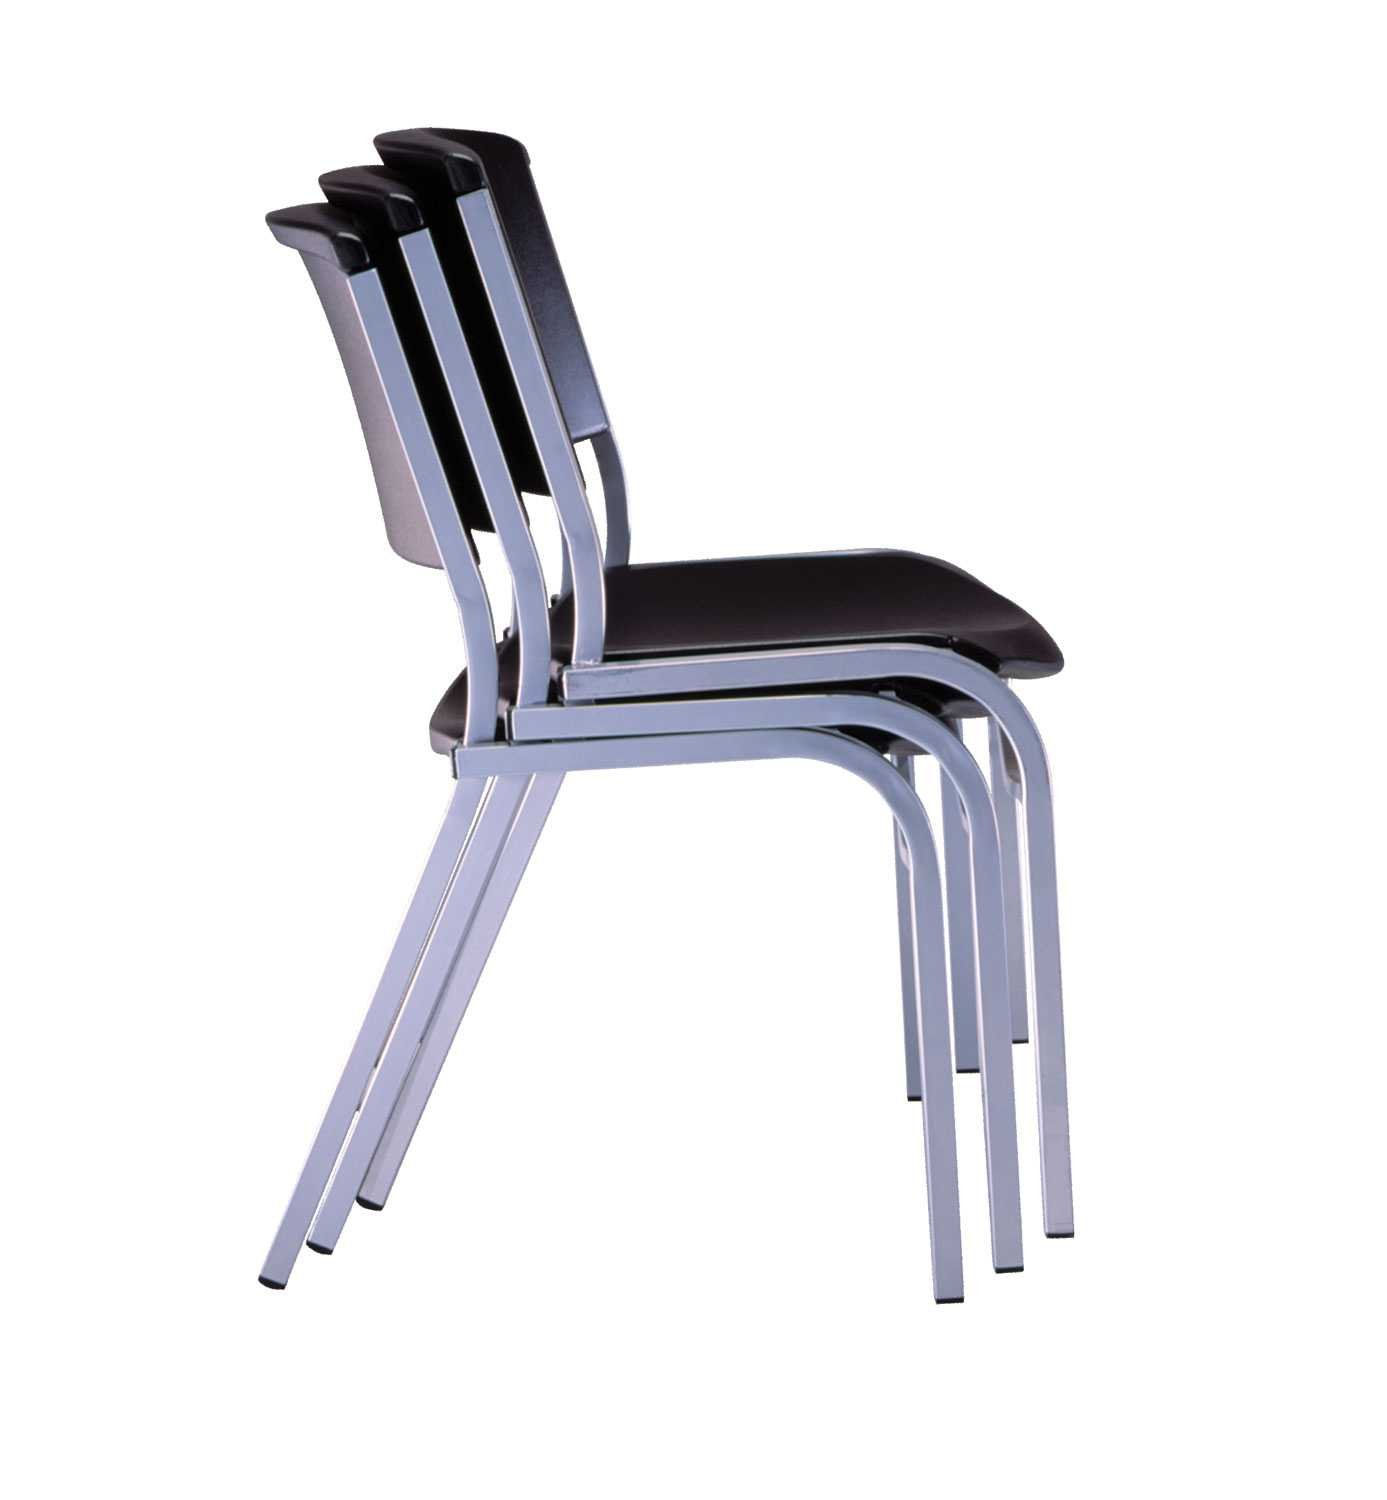 Amazon Lifetime Stacking Chair Black with Silver Steel